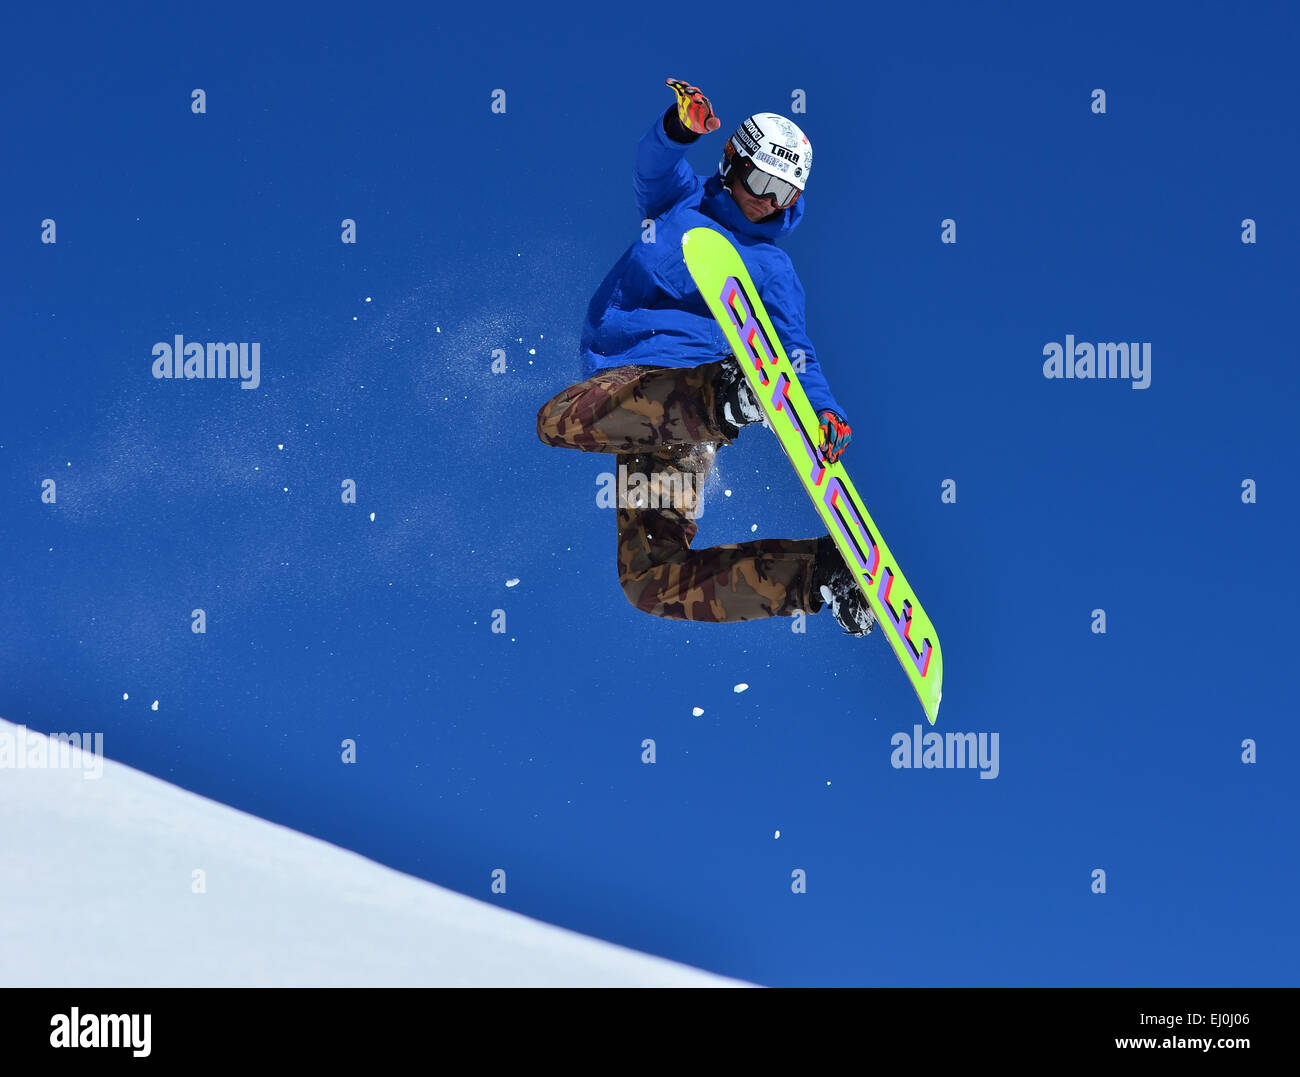 VERBIER, SWITZERLAND - FEBRUARY 21: Freestyle snowboarder performing rear grab stunt and trailing snow:  February - Stock Image